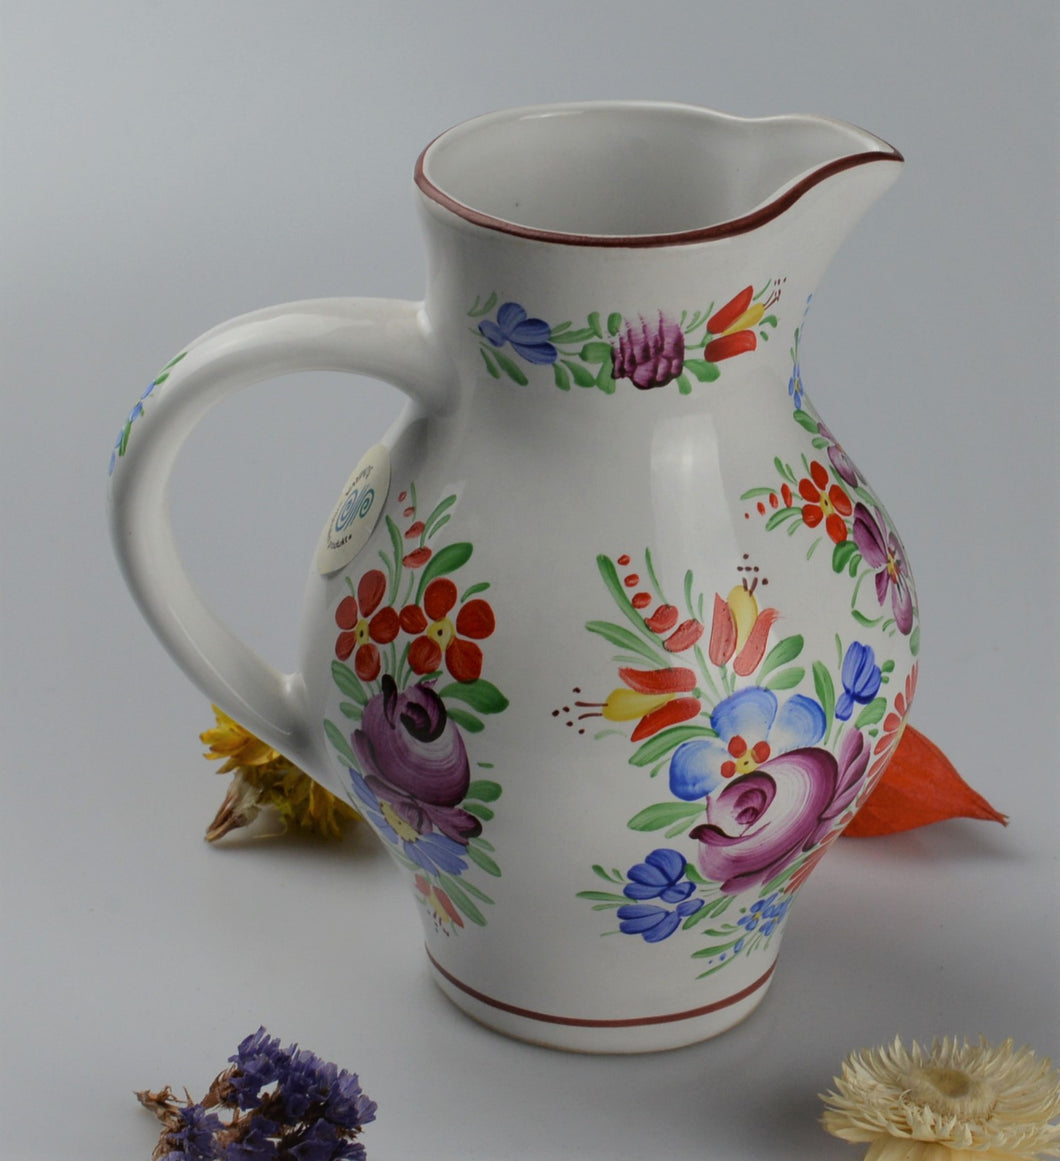 Medium jug from traditionnal czech ceramic - white